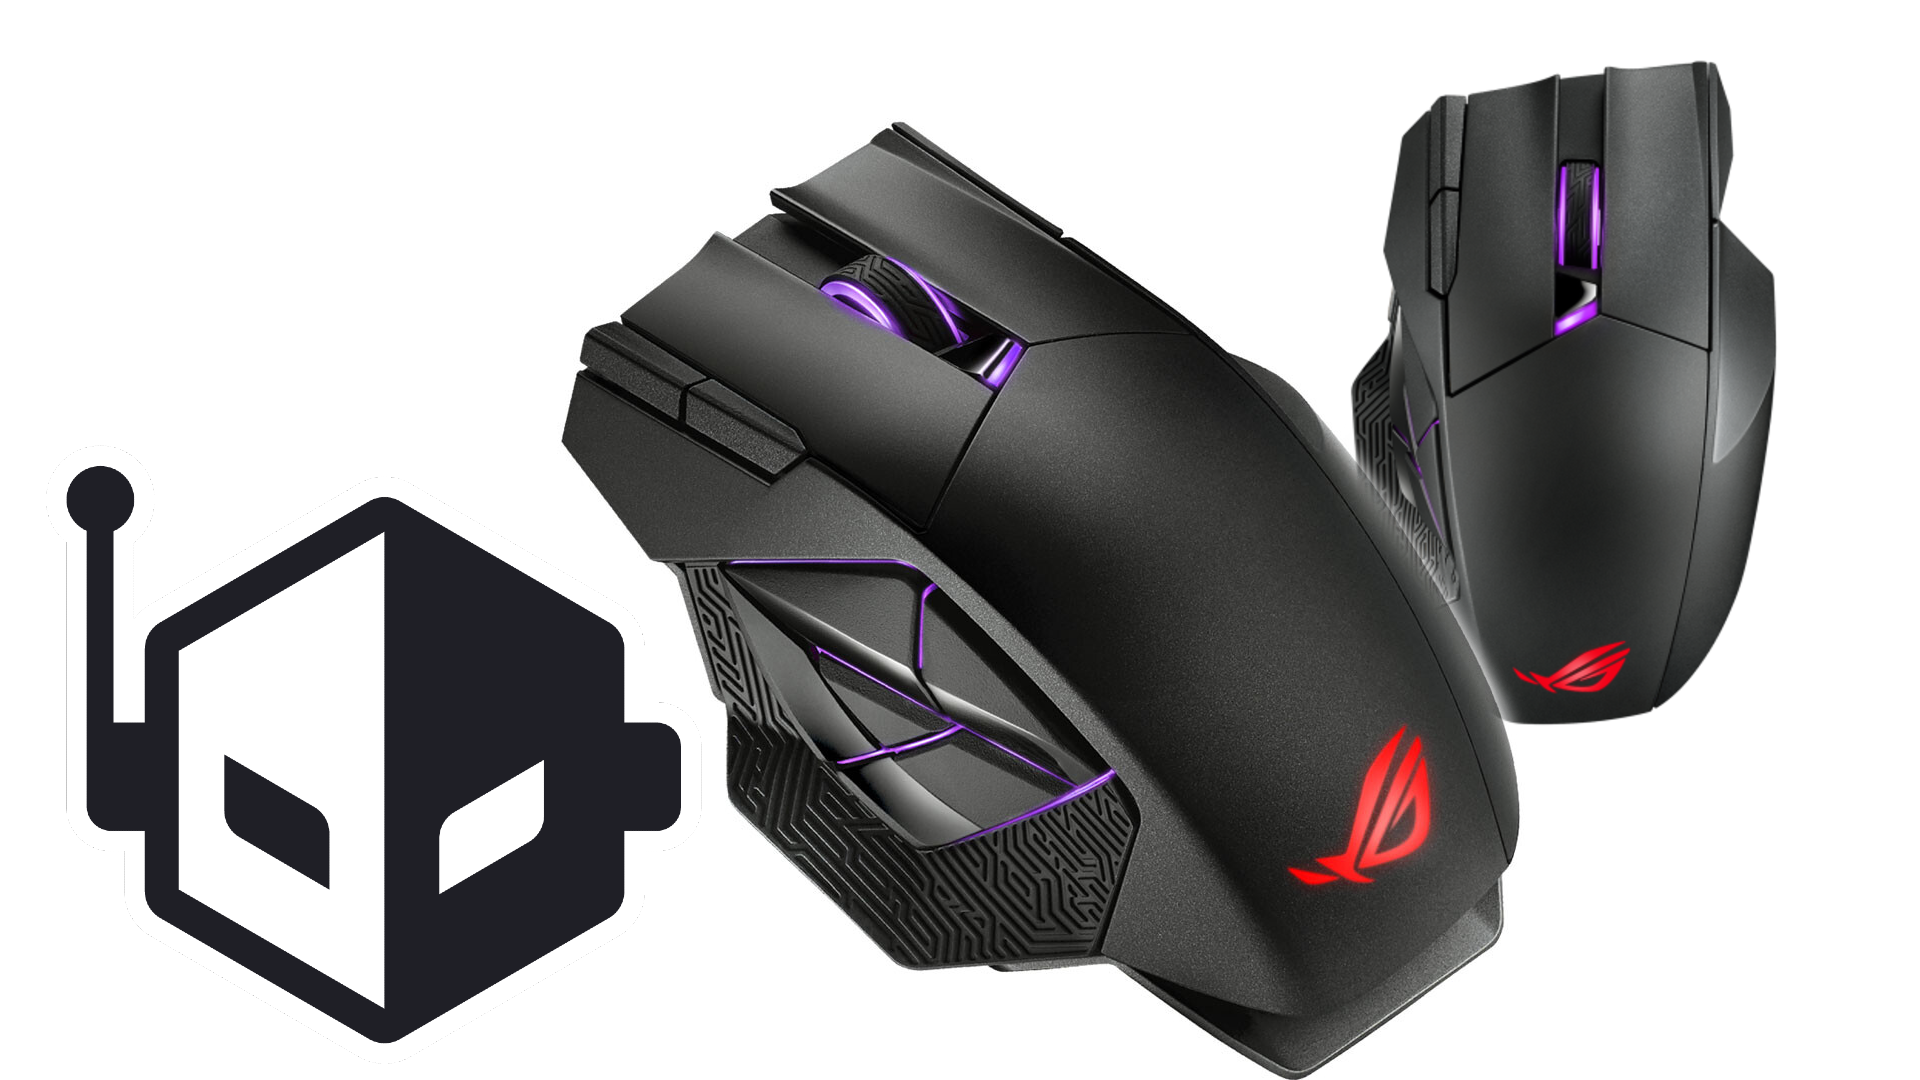 ASUS Releases the ROG Spatha X Wireless MMO Gaming Mouse!